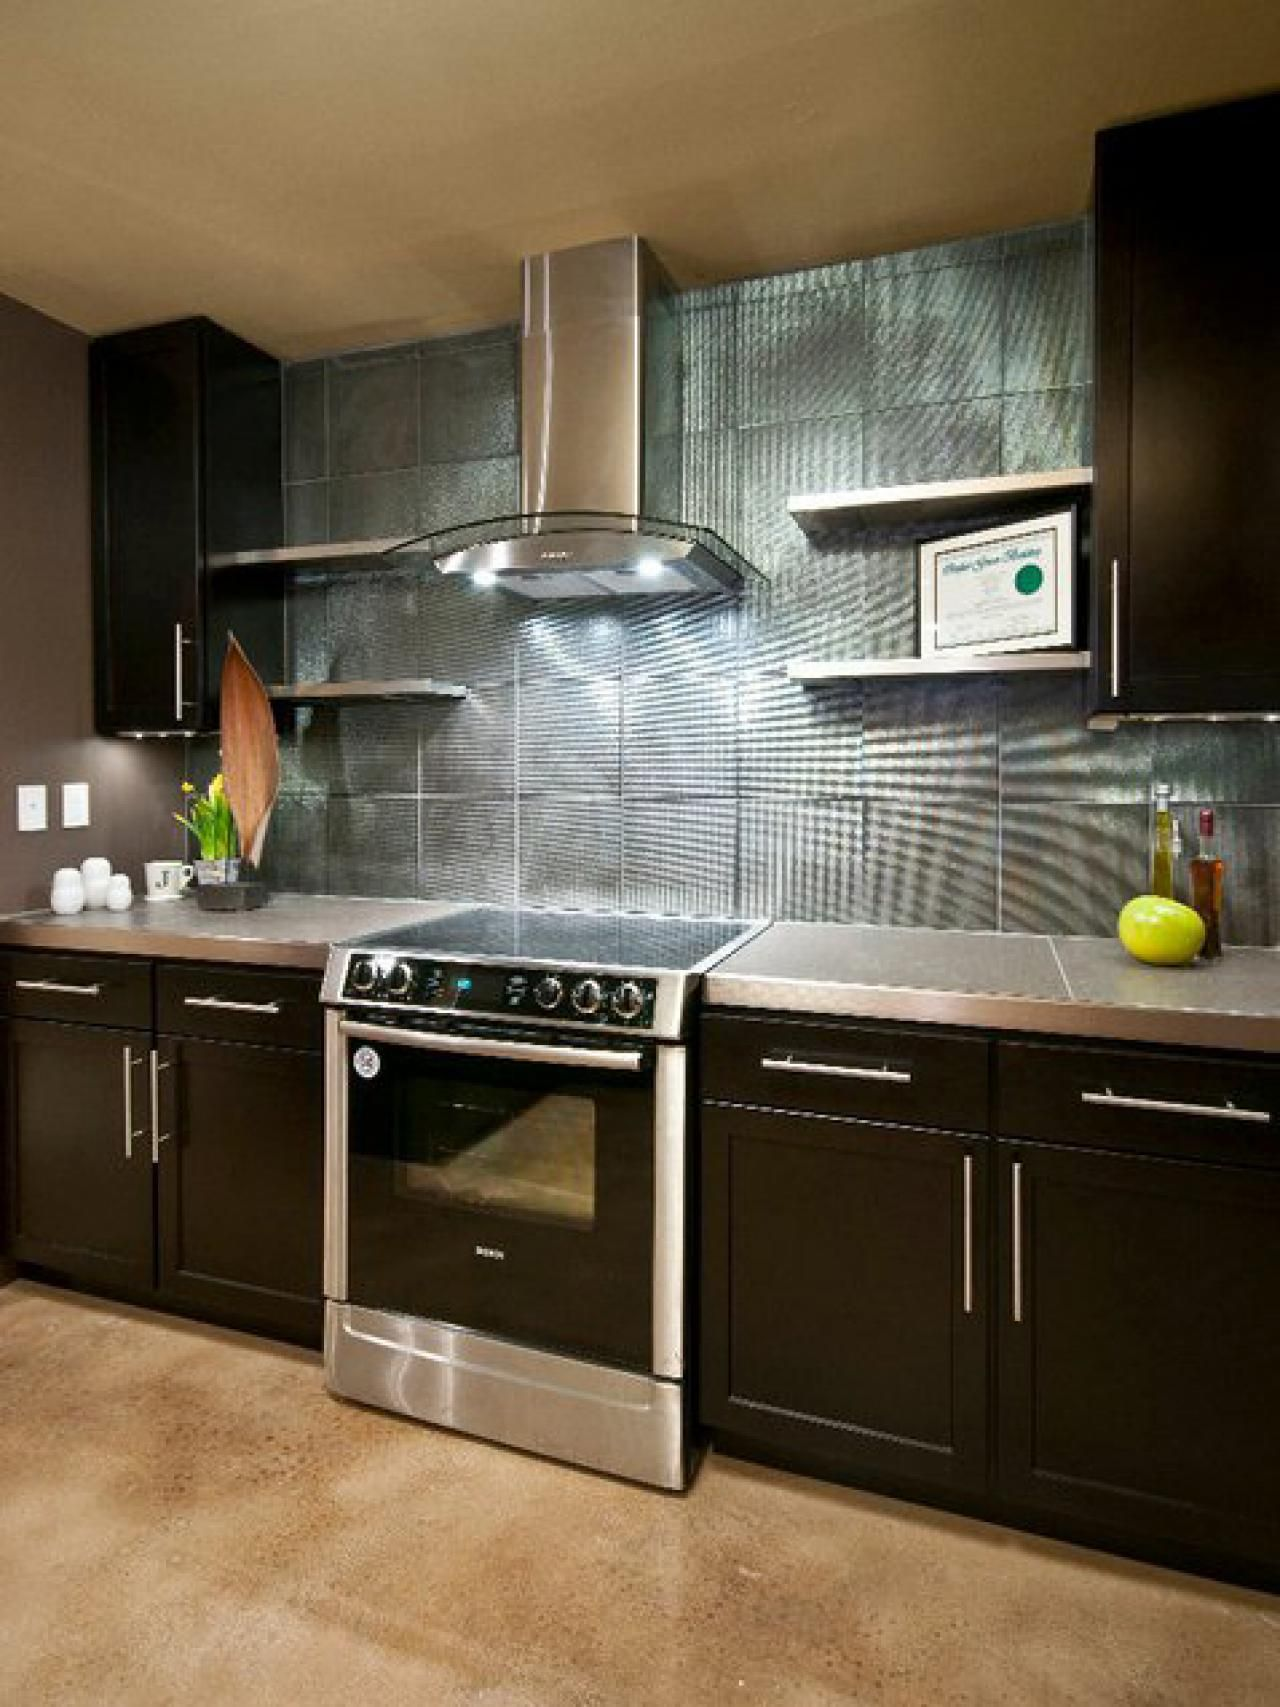 Modern Kitchen Backsplash Ideas Part - 20: 14 Kitchen Updates That Cost Less Than $200. Vent HoodBacksplash DesignBacksplash  IdeasModern ...